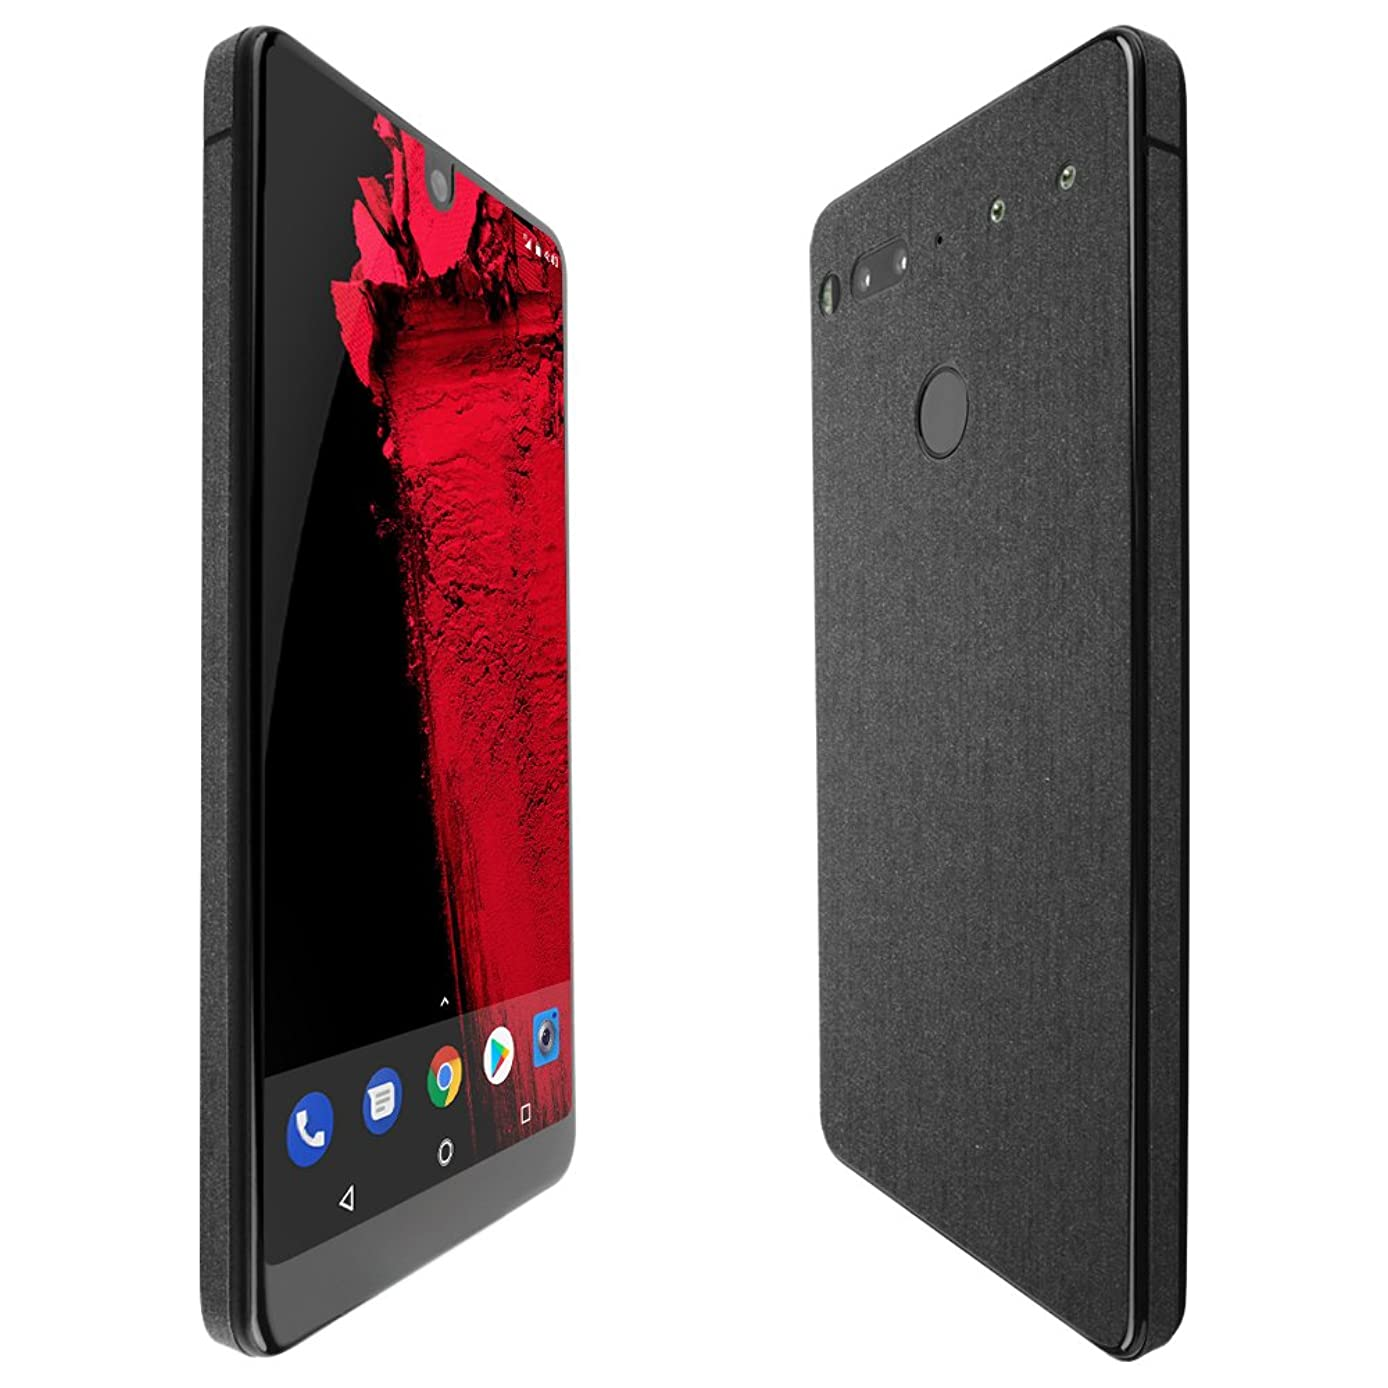 Essential Phone Screen Protector + Brushed Steel Full Body, Skinomi TechSkin Brushed Steel Skin for Essential Phone with Anti-Bubble Clear Film Screen